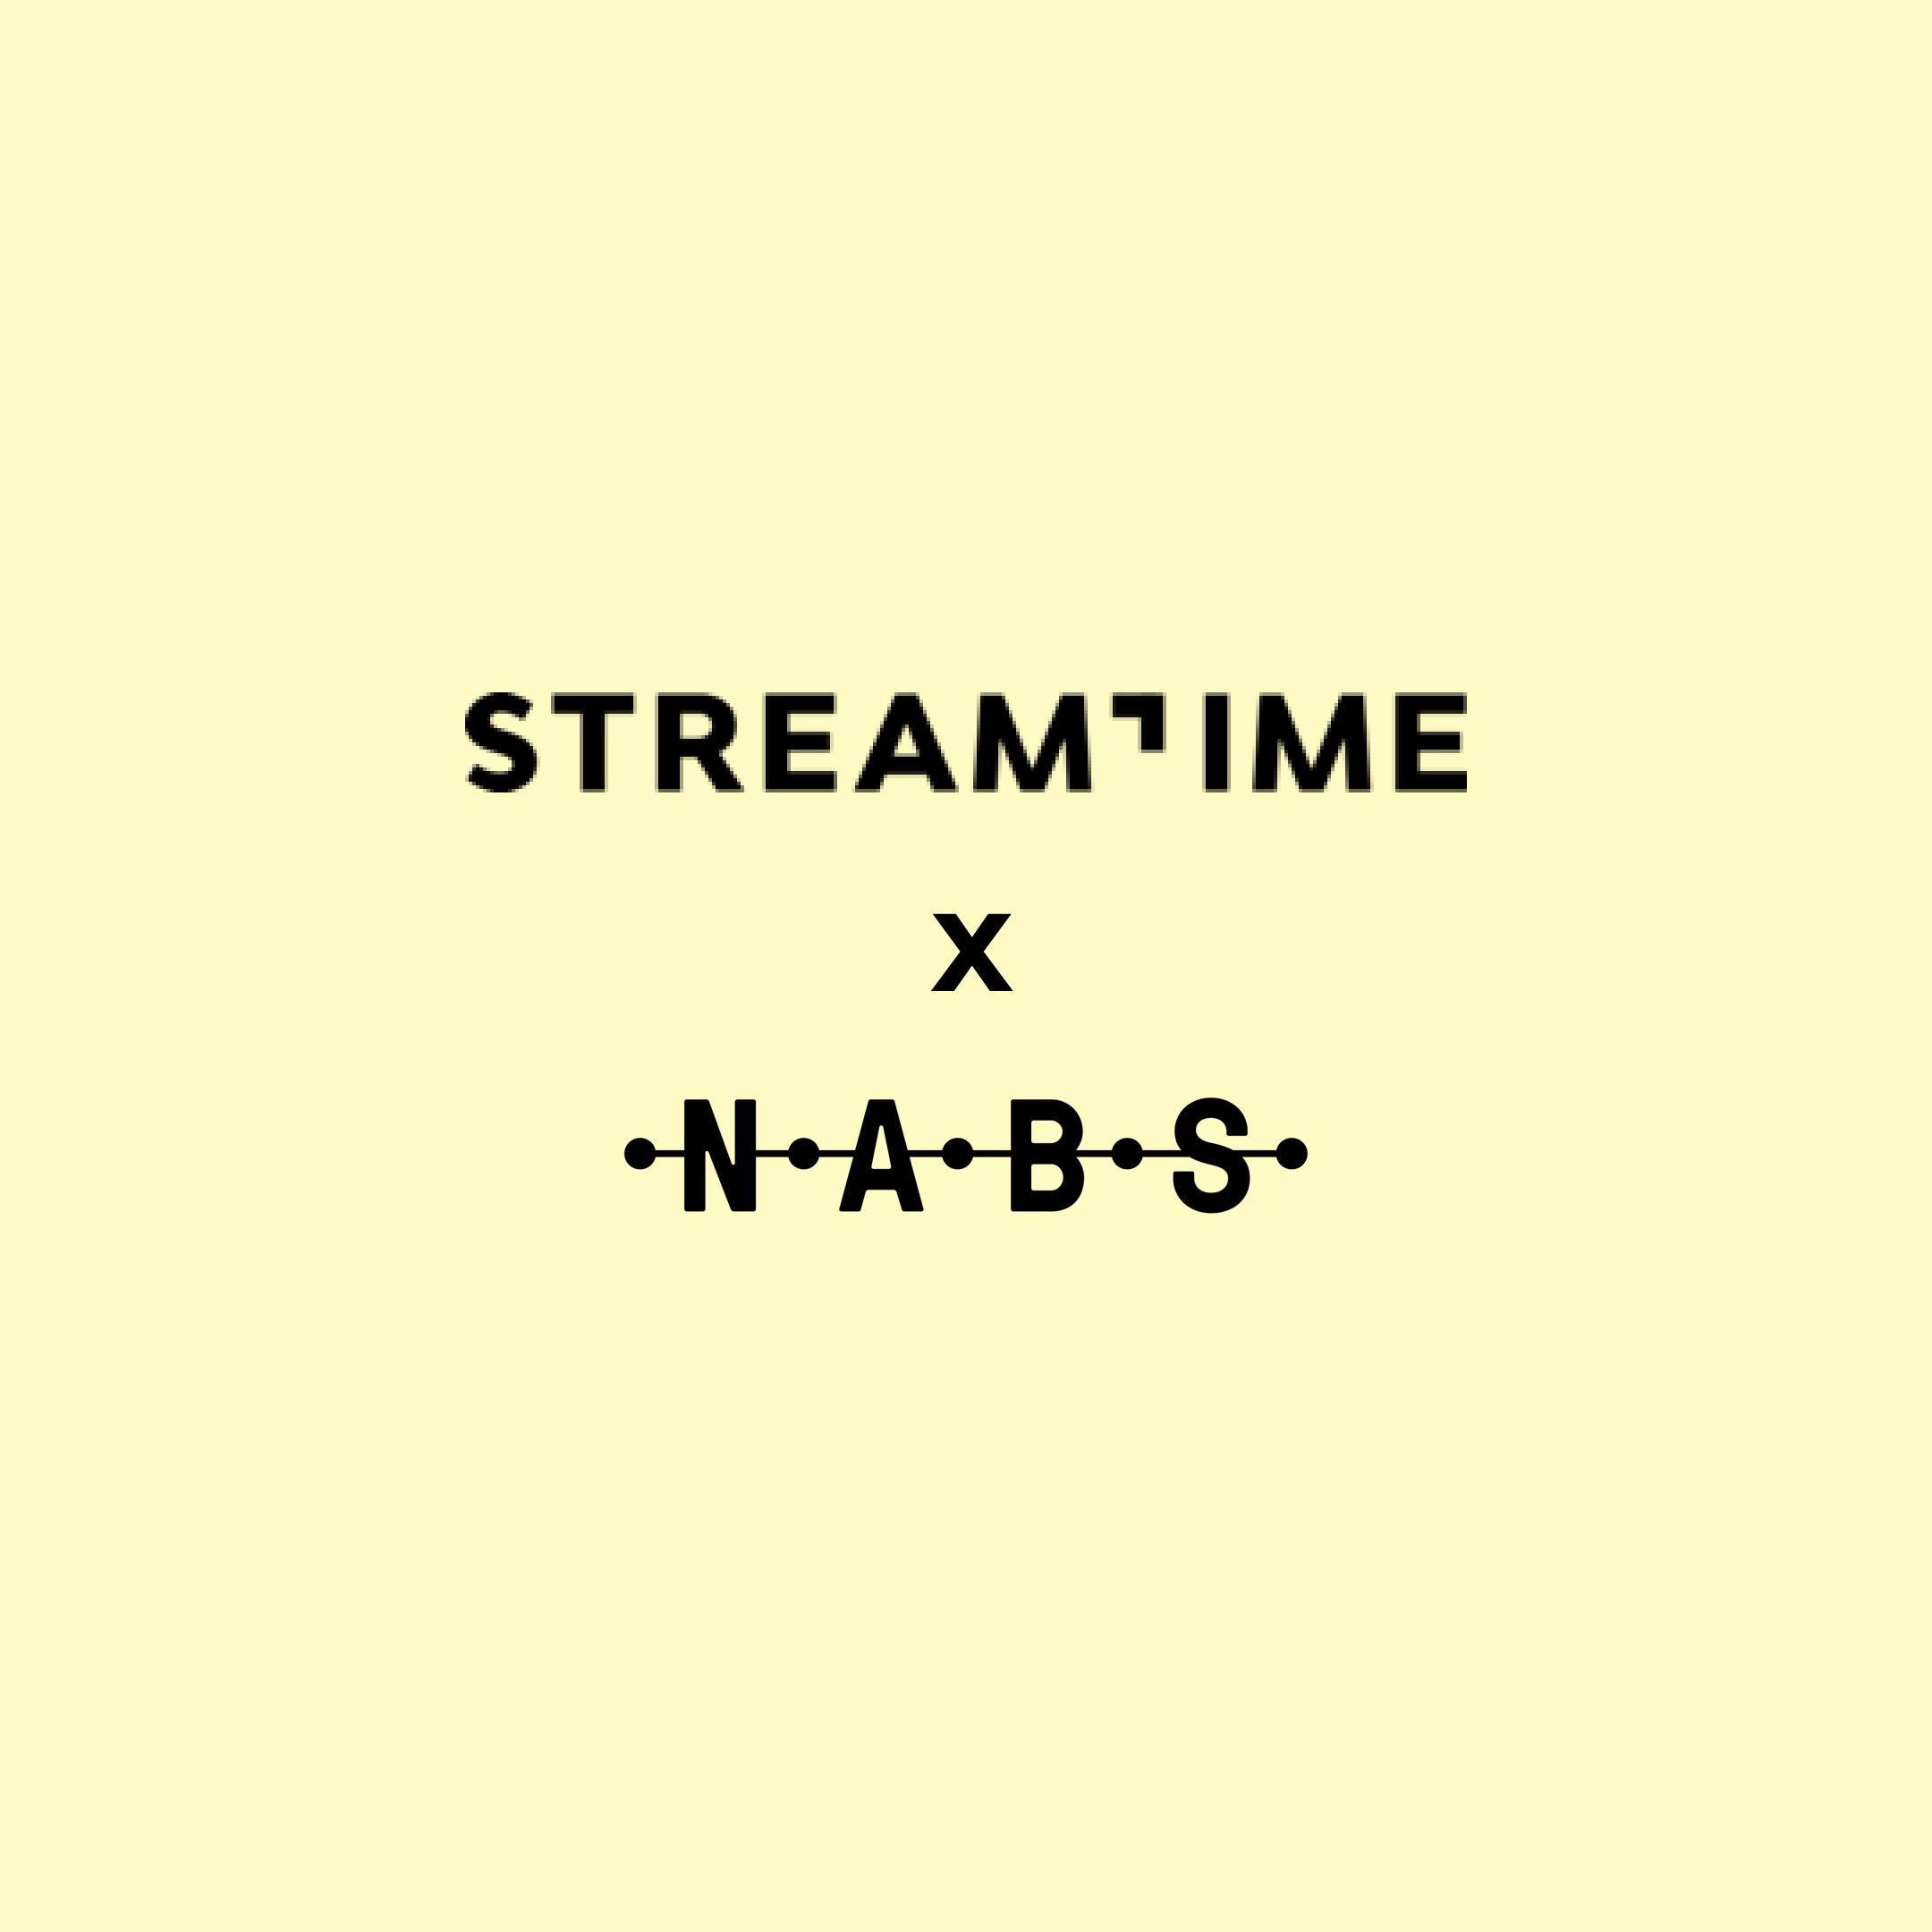 Streamtime supports NABS